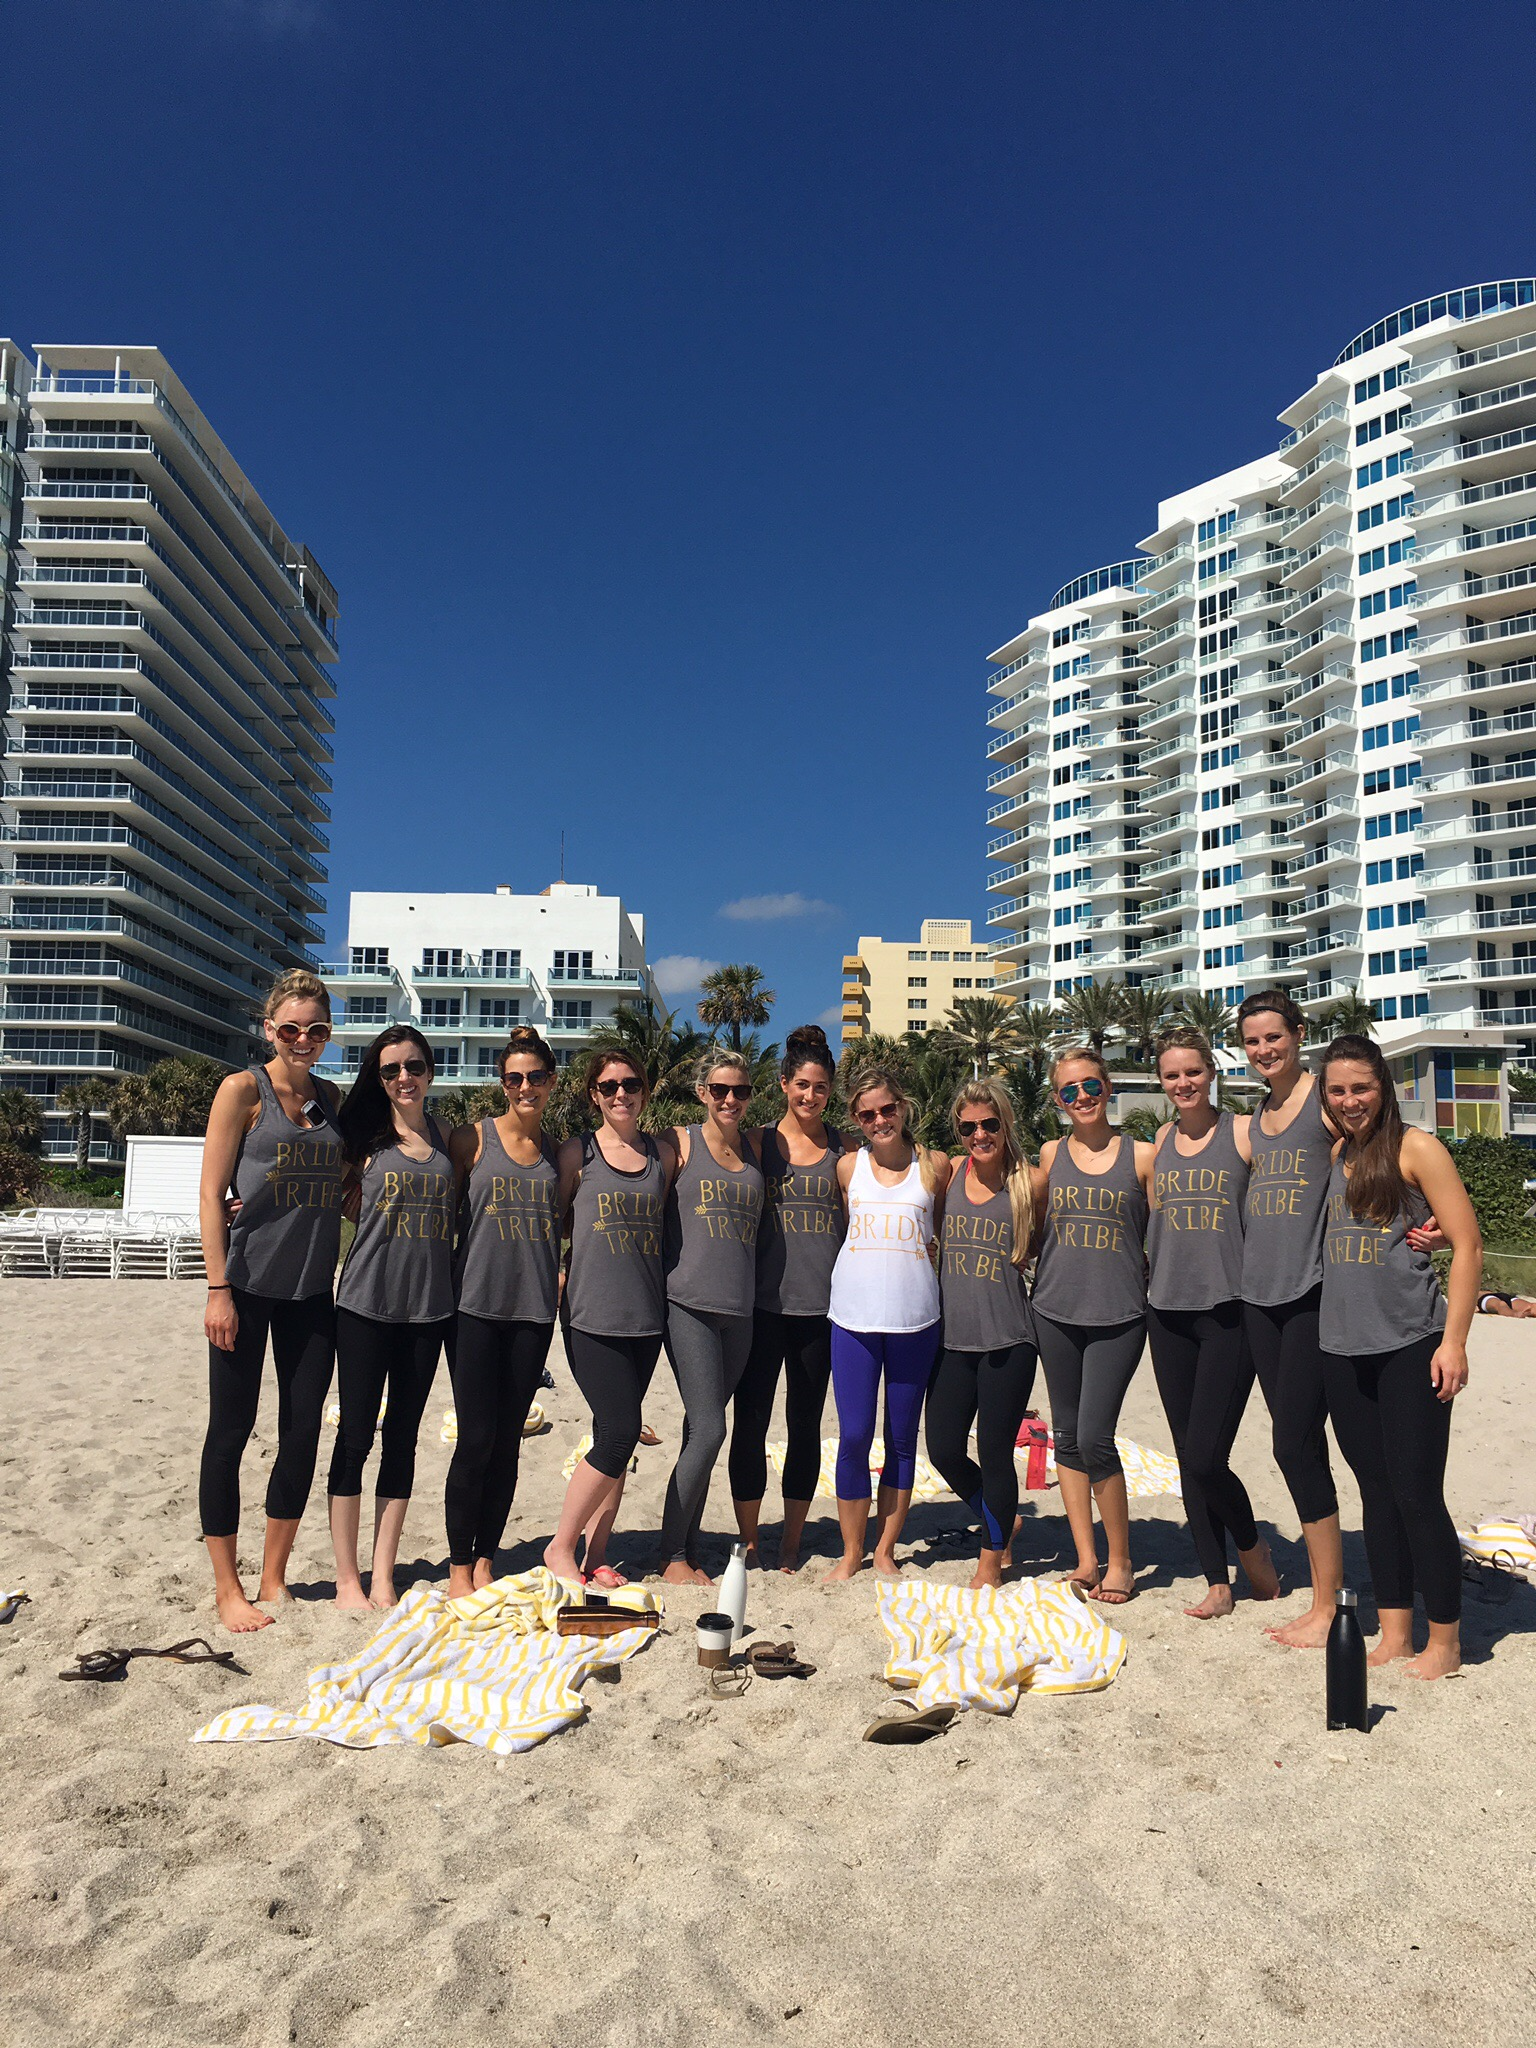 Yoga on the Beach | 7 Ways to Stay Healthy While Traveling | Jennifer Diaz